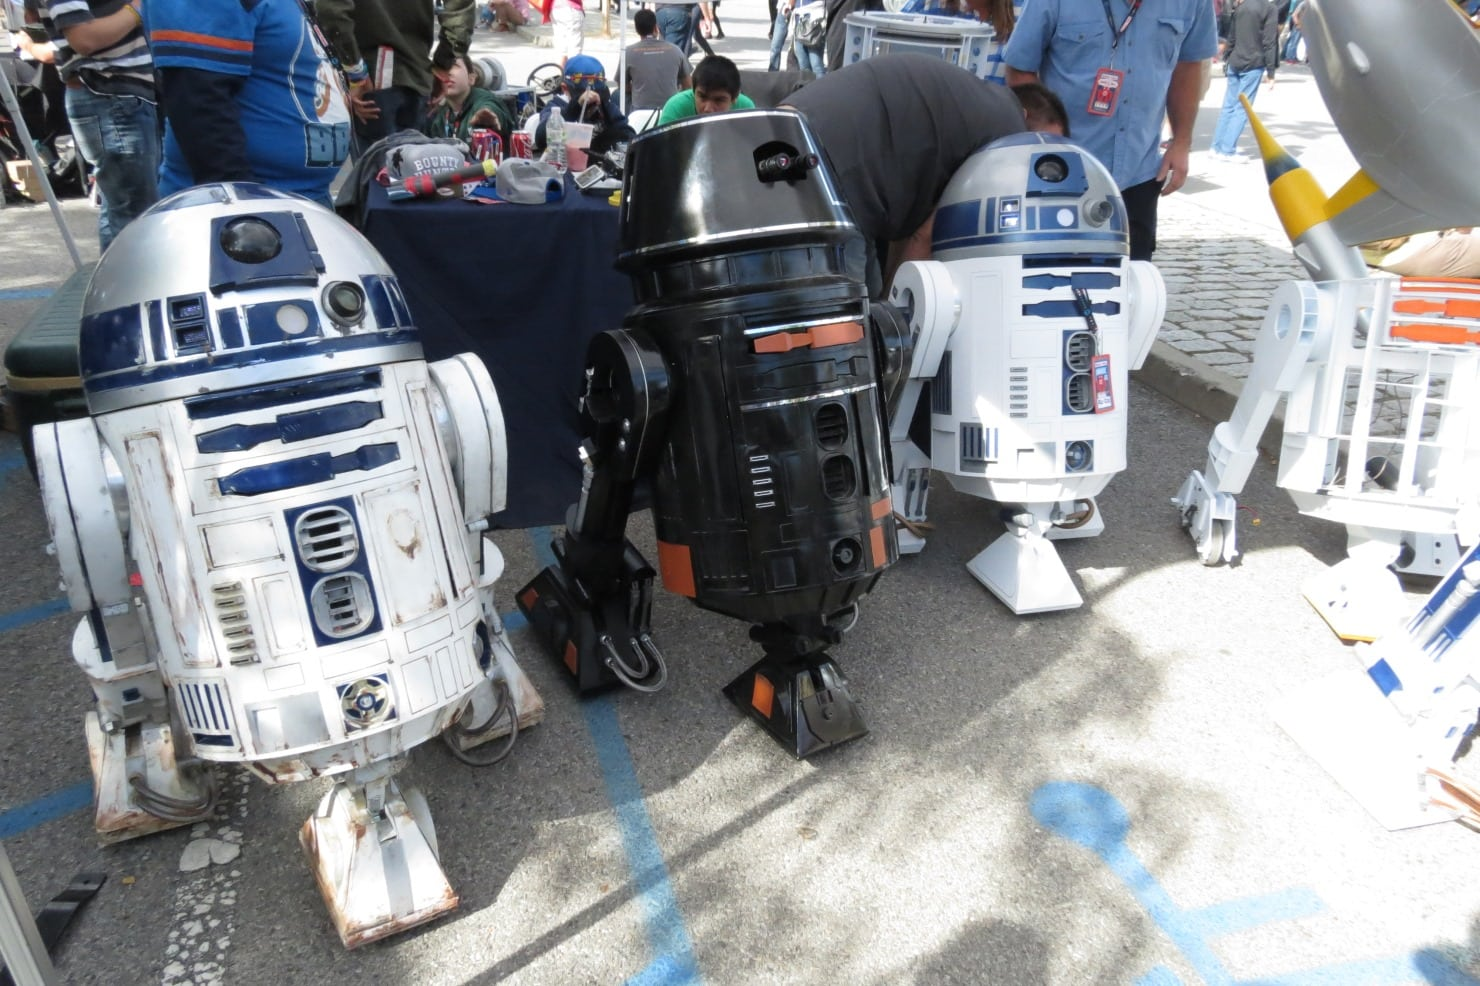 Robots, 3D Printing on Mars, and LittleBits at Maker Faire New York